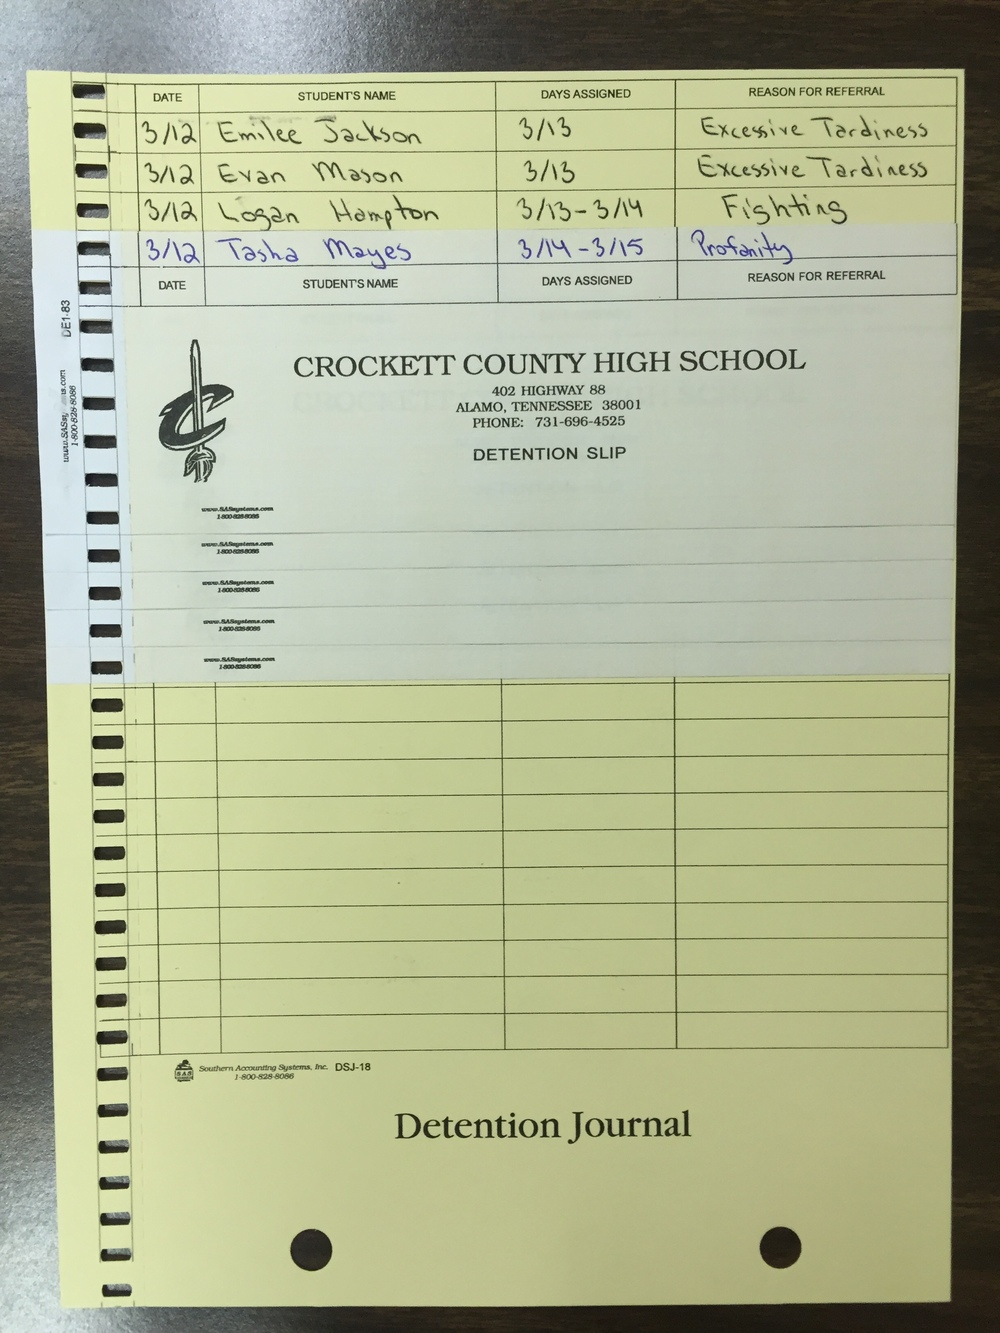 Create a dentition pass while also creating a detention log for teacher/administration.